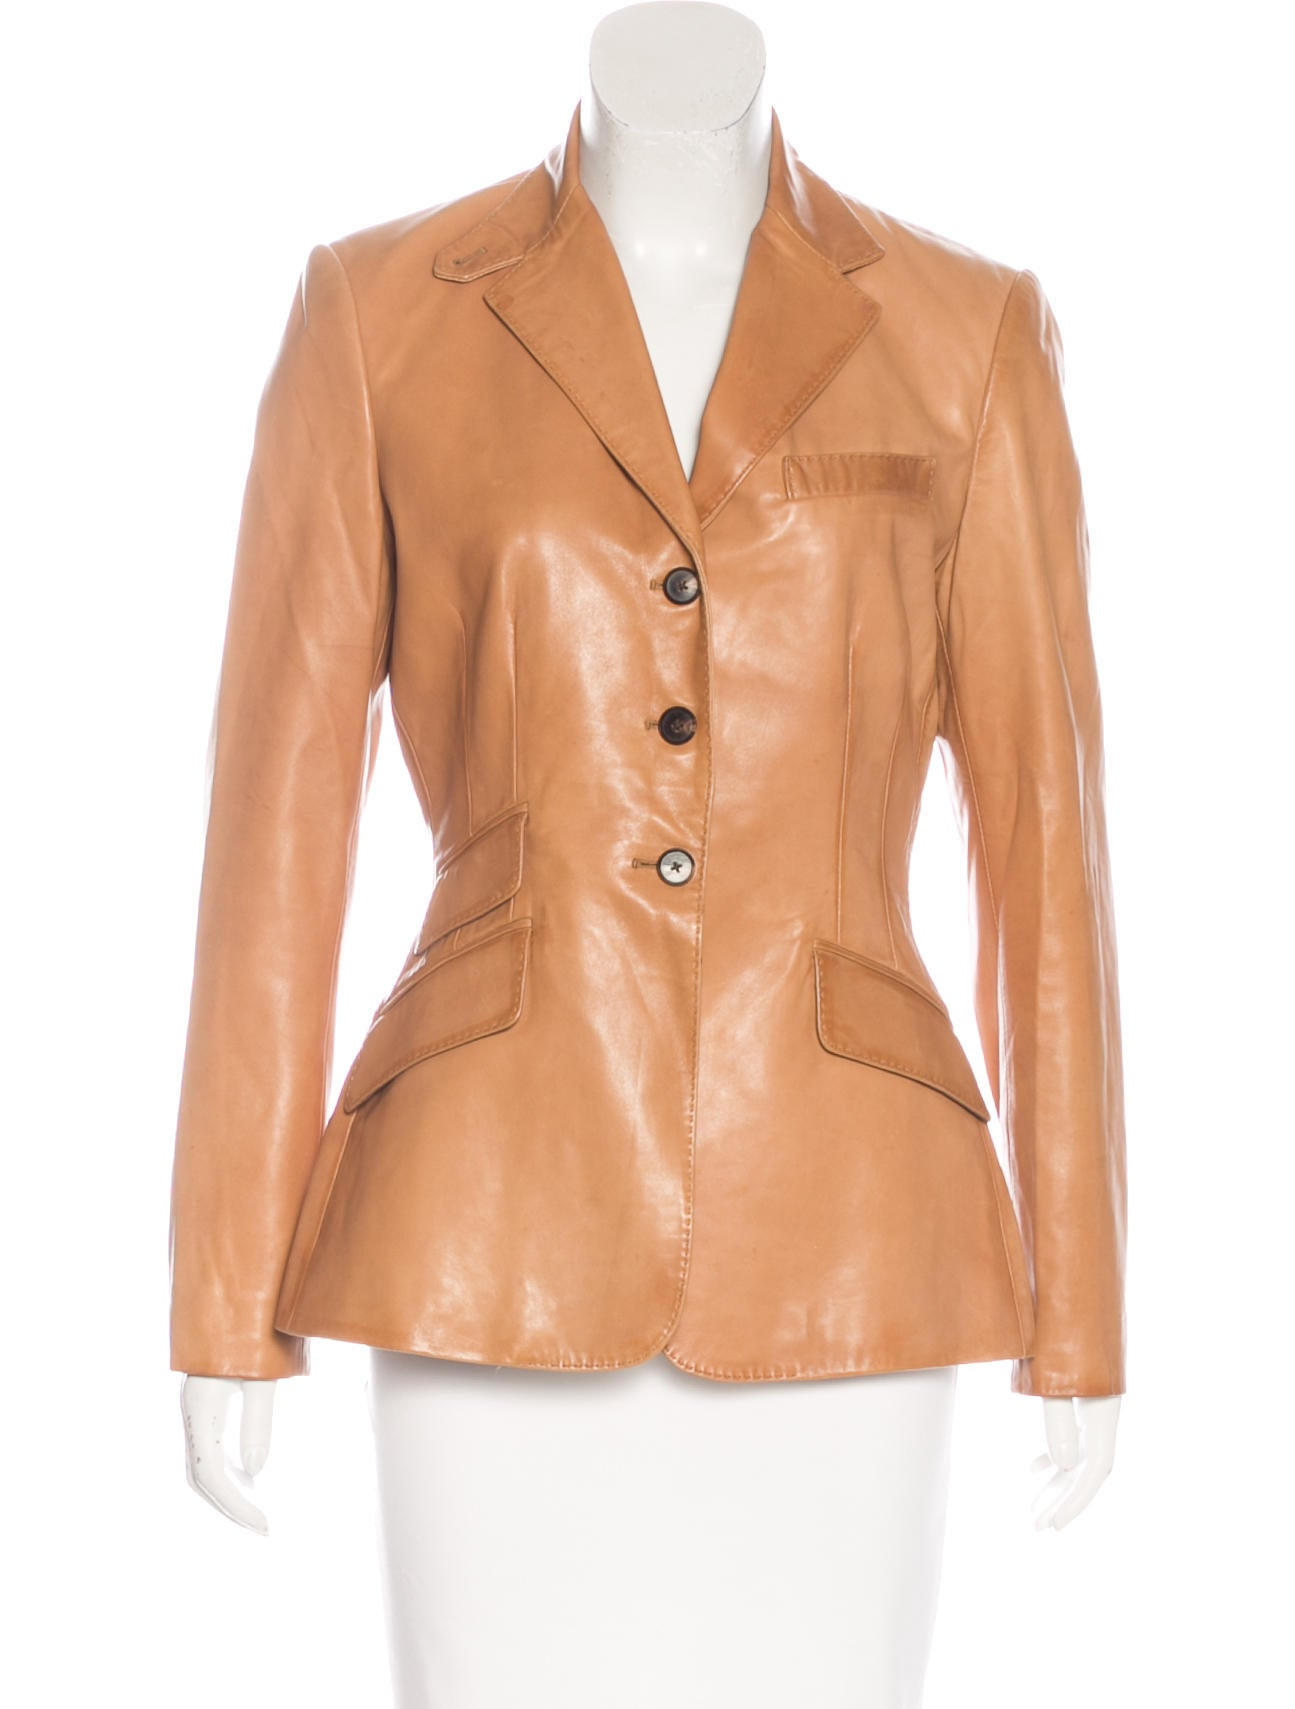 Free shipping BOTH ways on womens jackets with leather sleeves, from our vast selection of styles. Fast delivery, and 24/7/ real-person service with a smile. Click or call